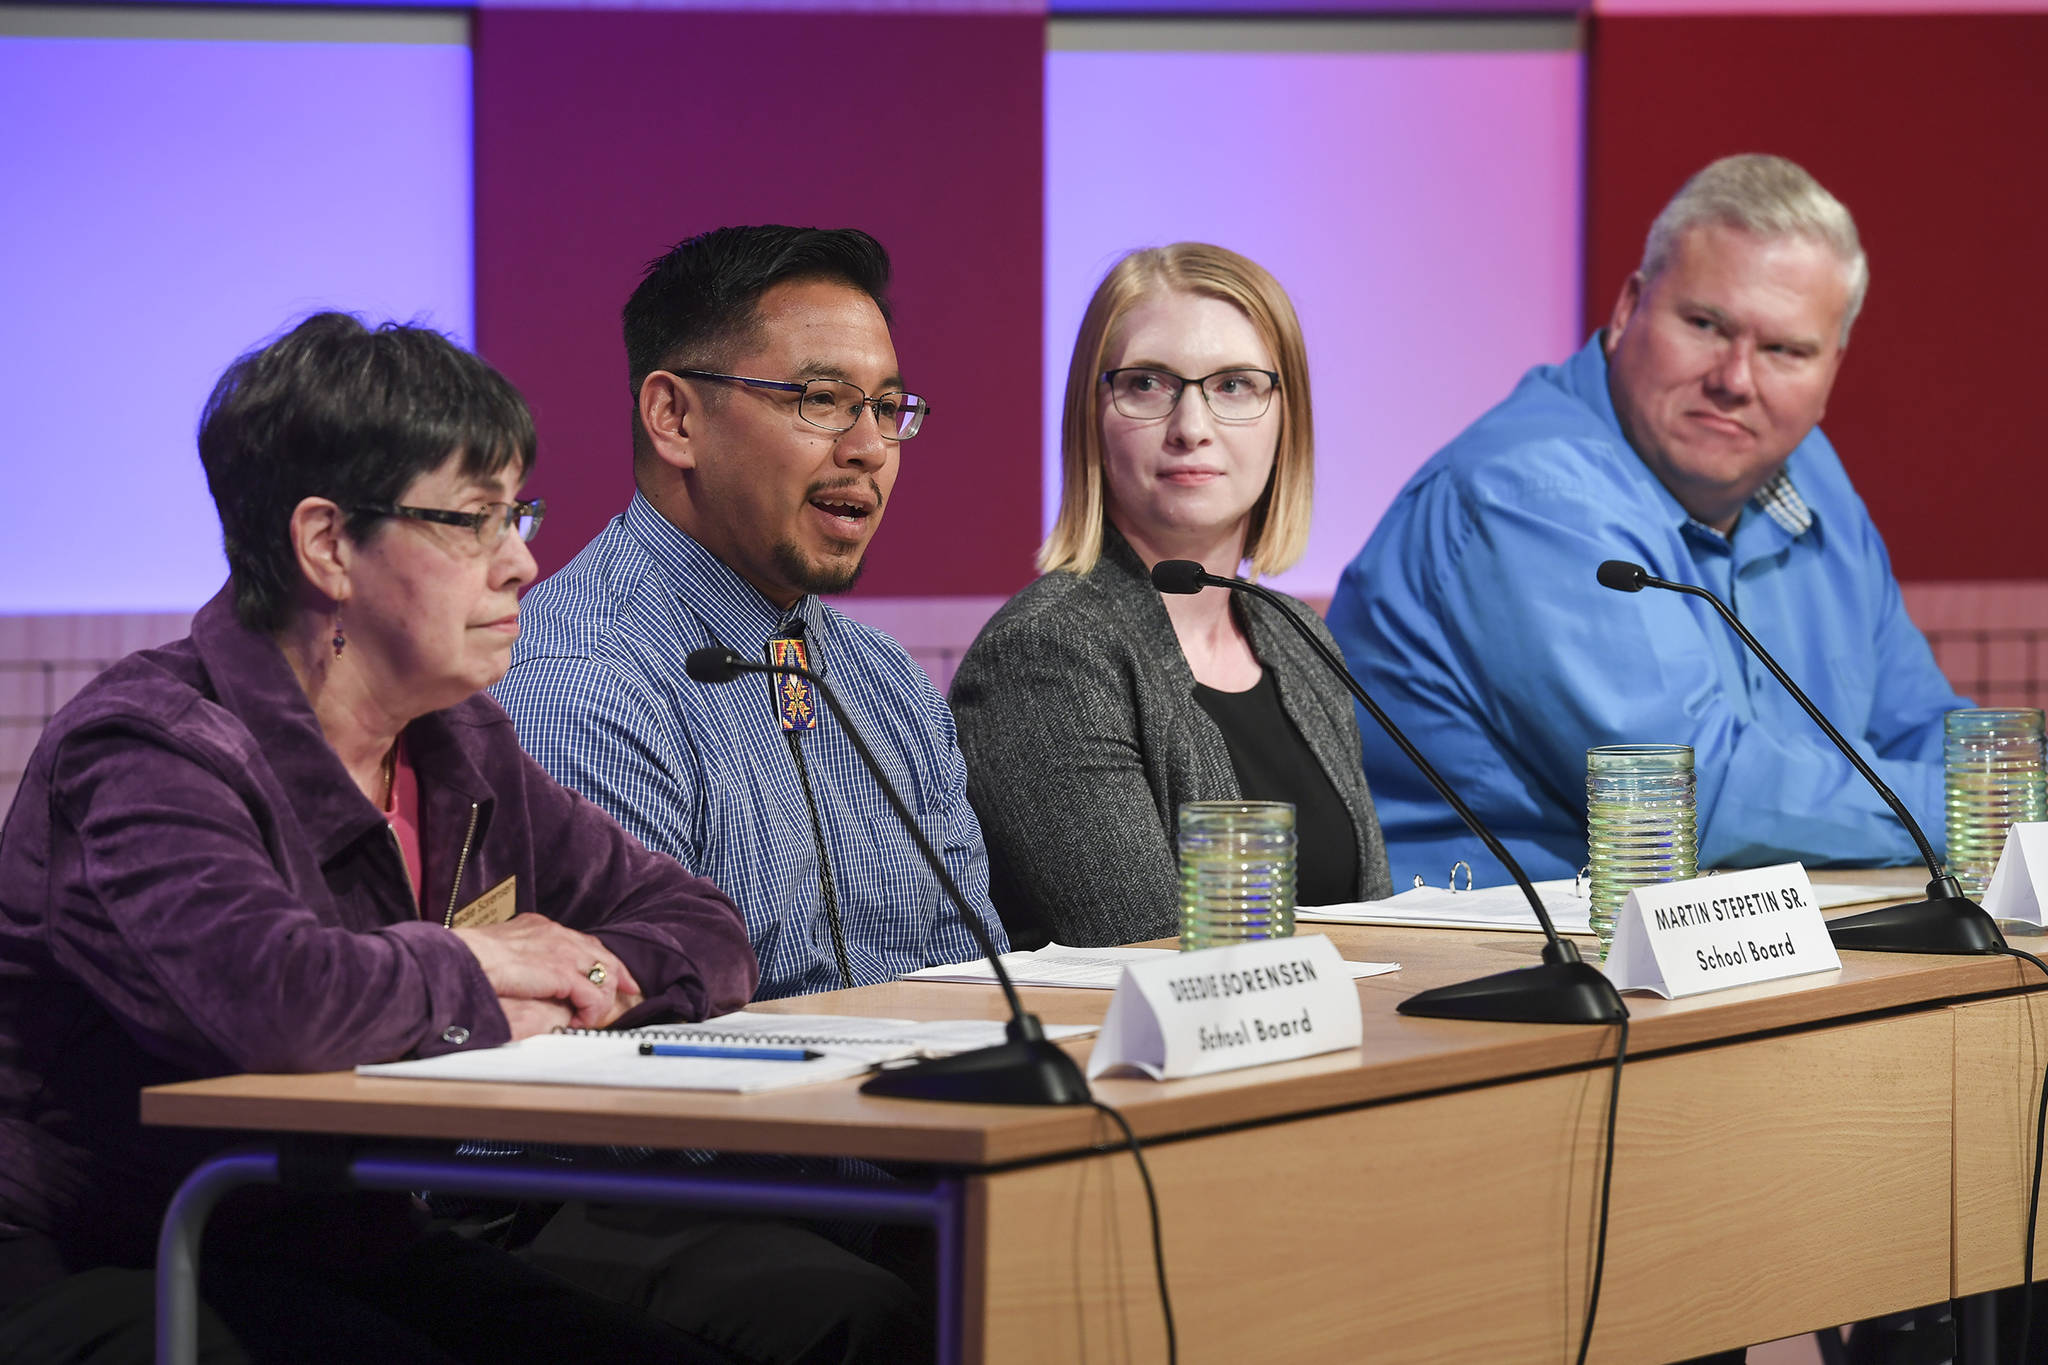 Juneau School Board candidates Deedie Sorensen, left, Martin Stepetin, Sr., Bonny Jensen and Emil Mackey, right, respond to questions during a candidate forum at KTOO on Tuesday, Sept. 17, 2019. The event was sponsored by the Juneau League of Women Voters. (Michael Penn | Juneau Empire)